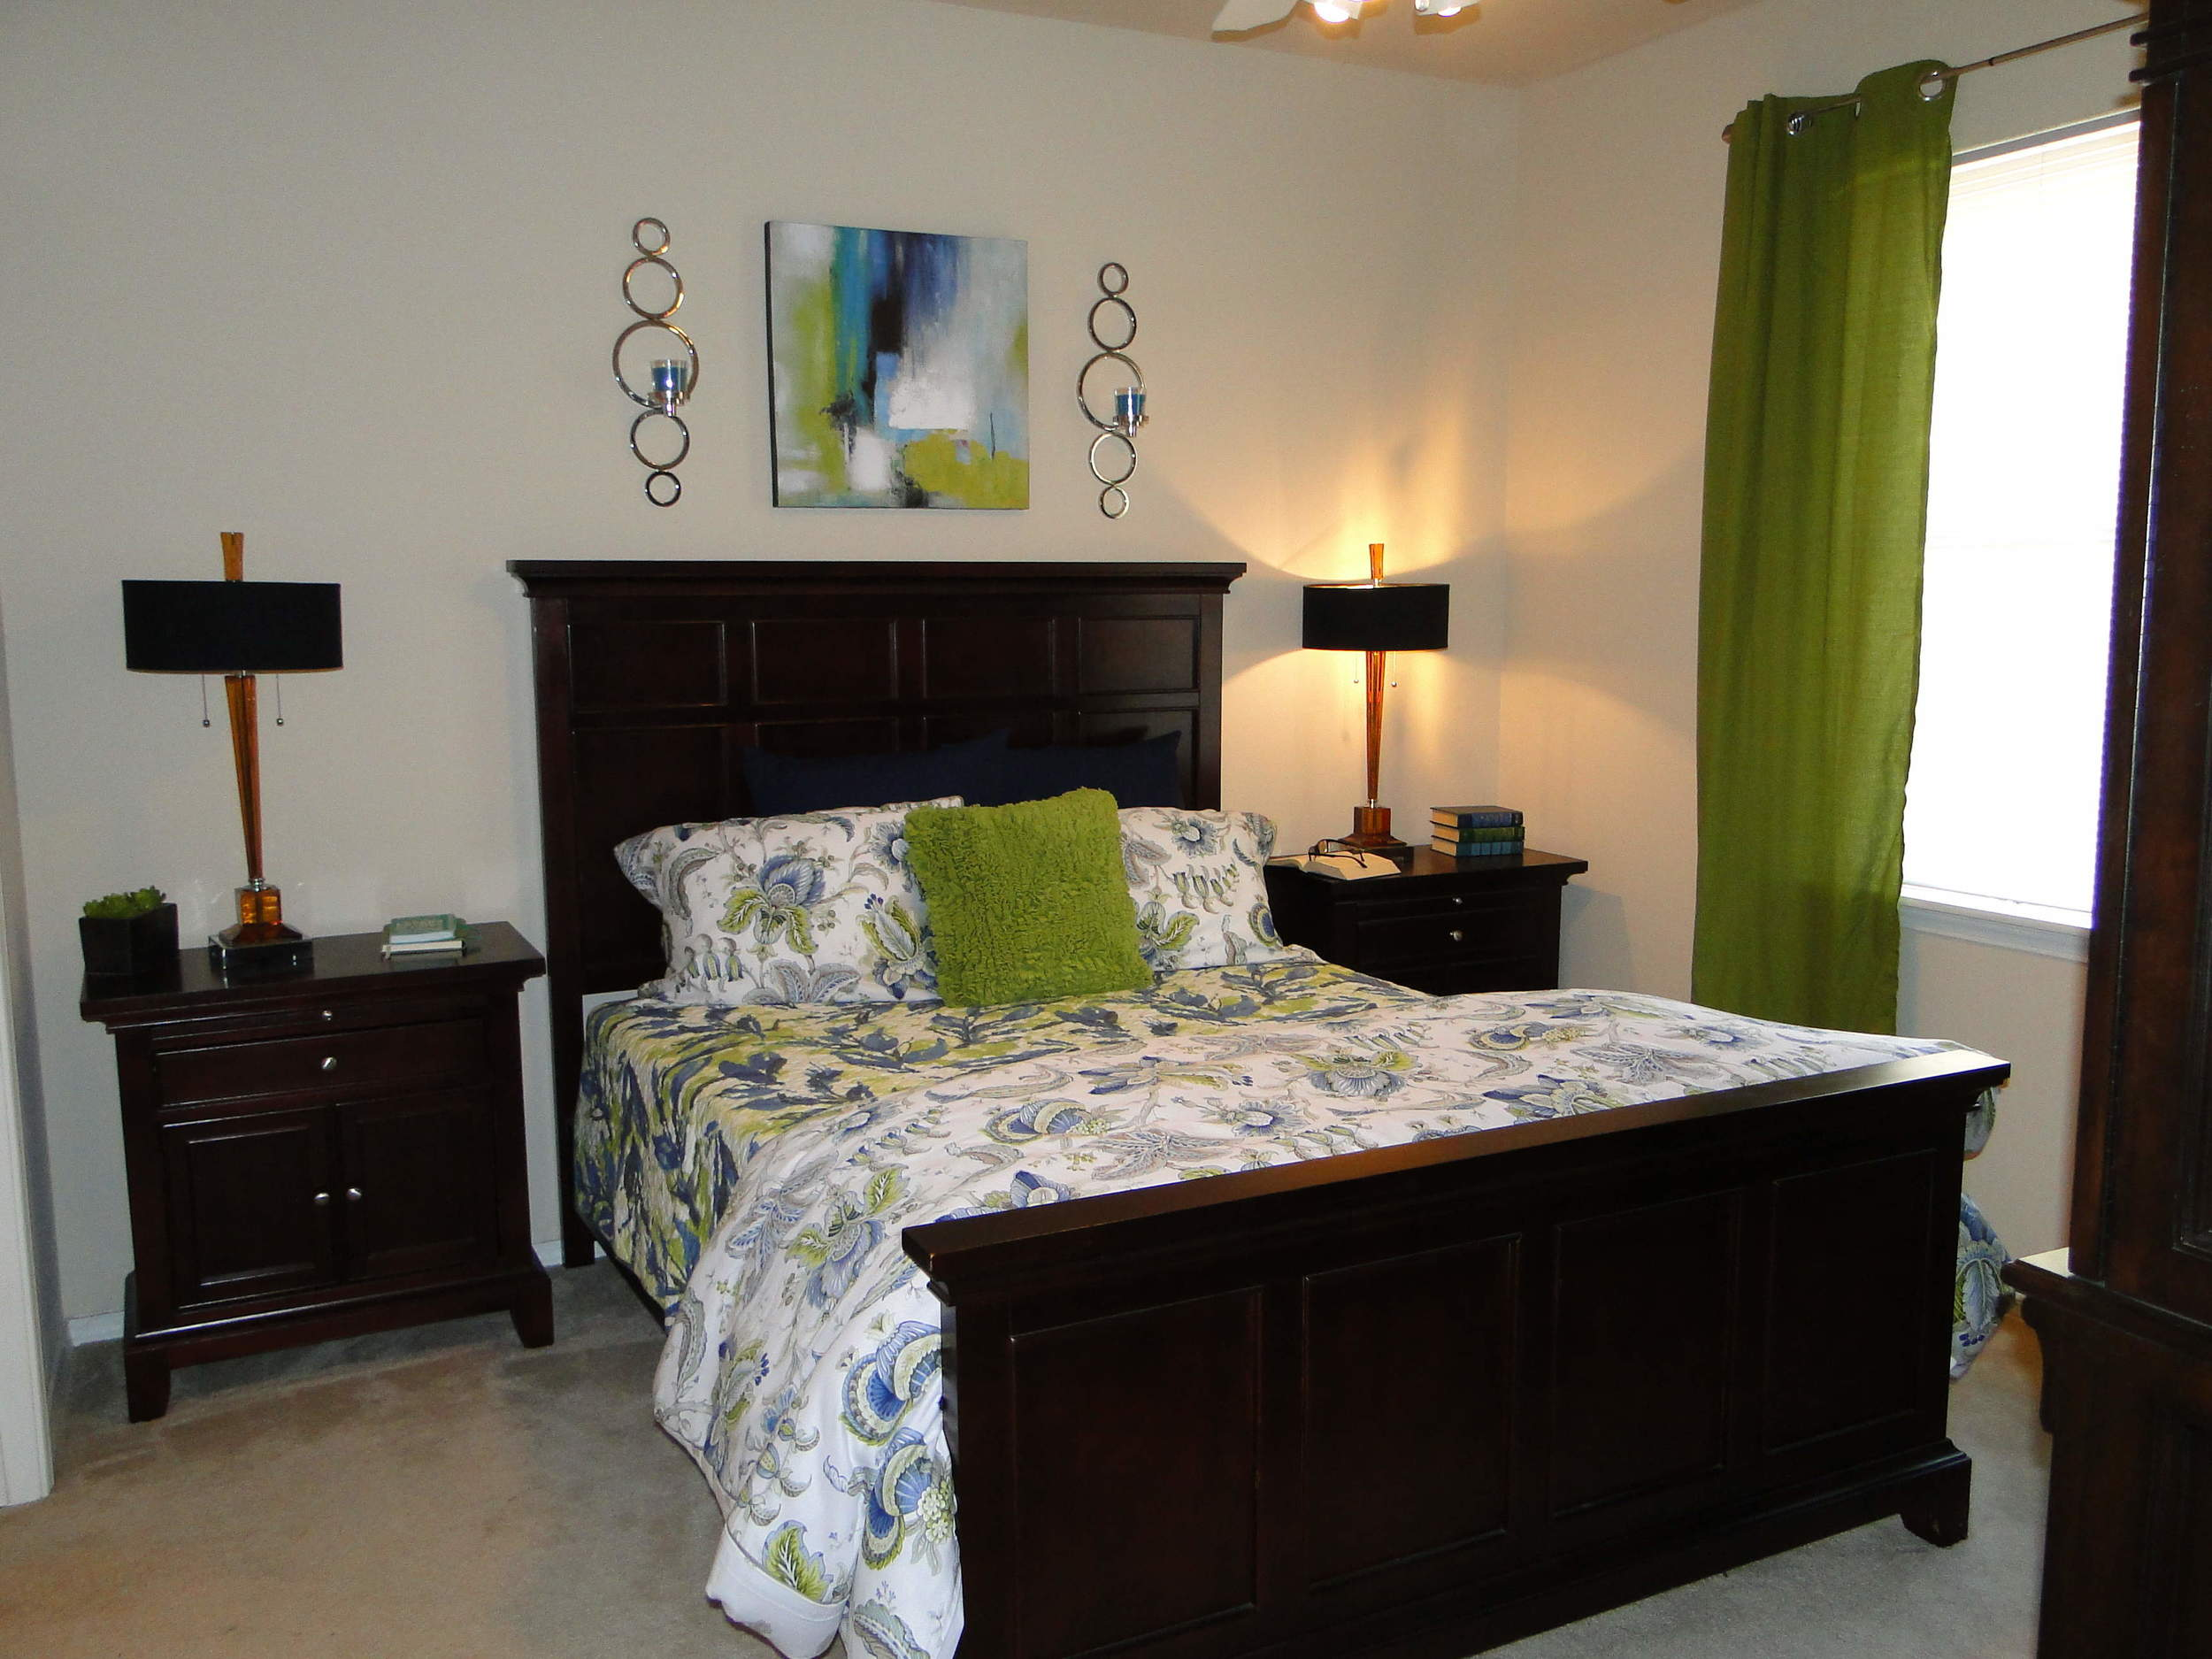 The bedrooms have plenty of room for your furniture set here at Arioso Apartments & Townhomes in Grand Prairie, TX